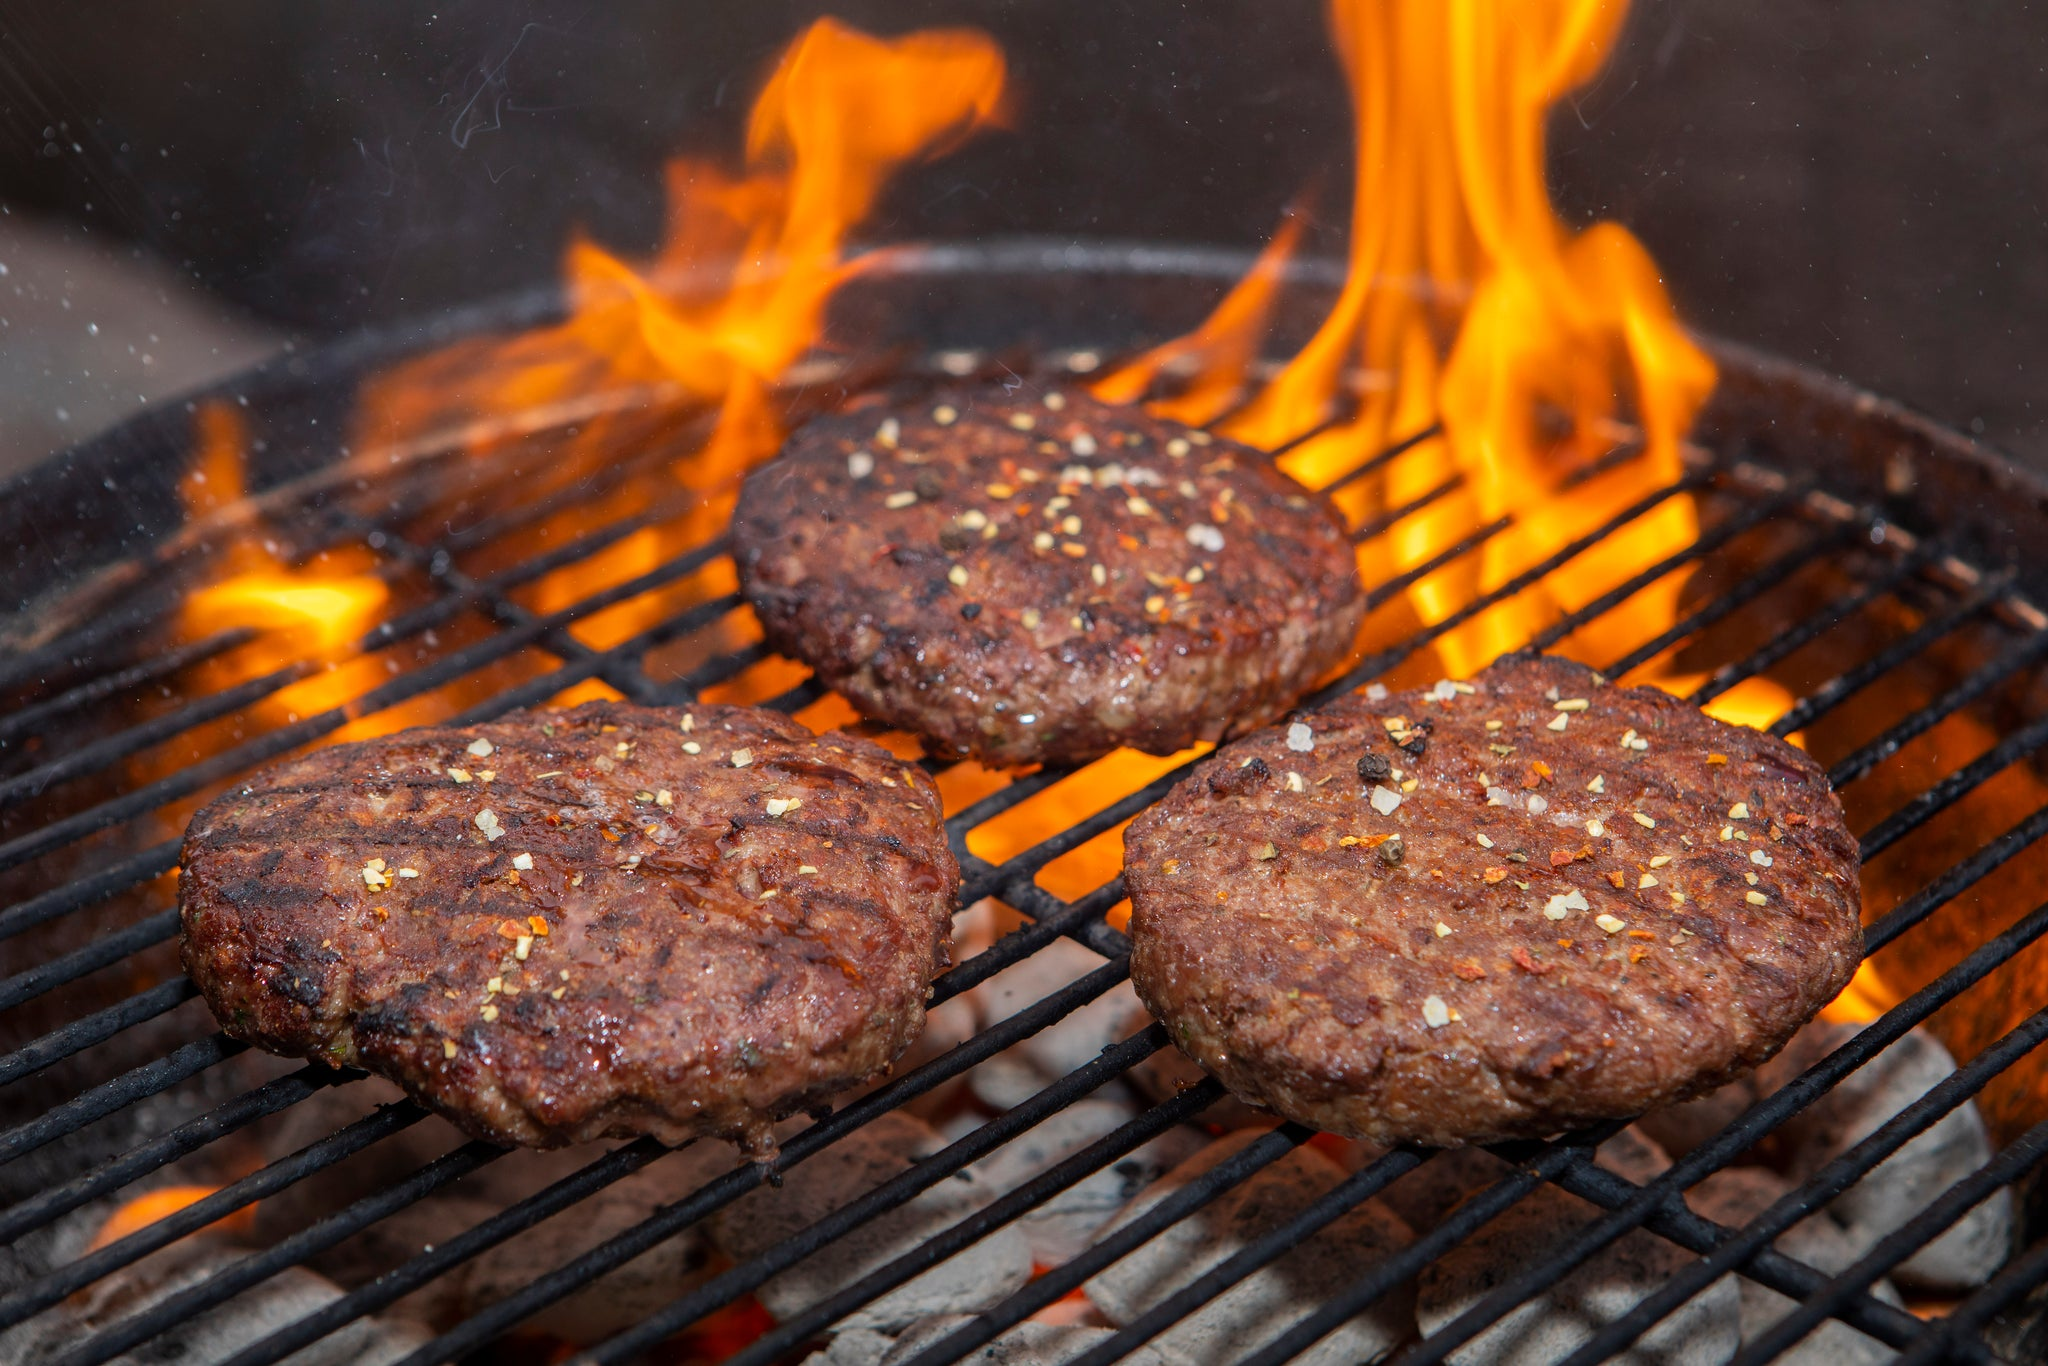 3 ground ostrich steak burgers being flame grilled